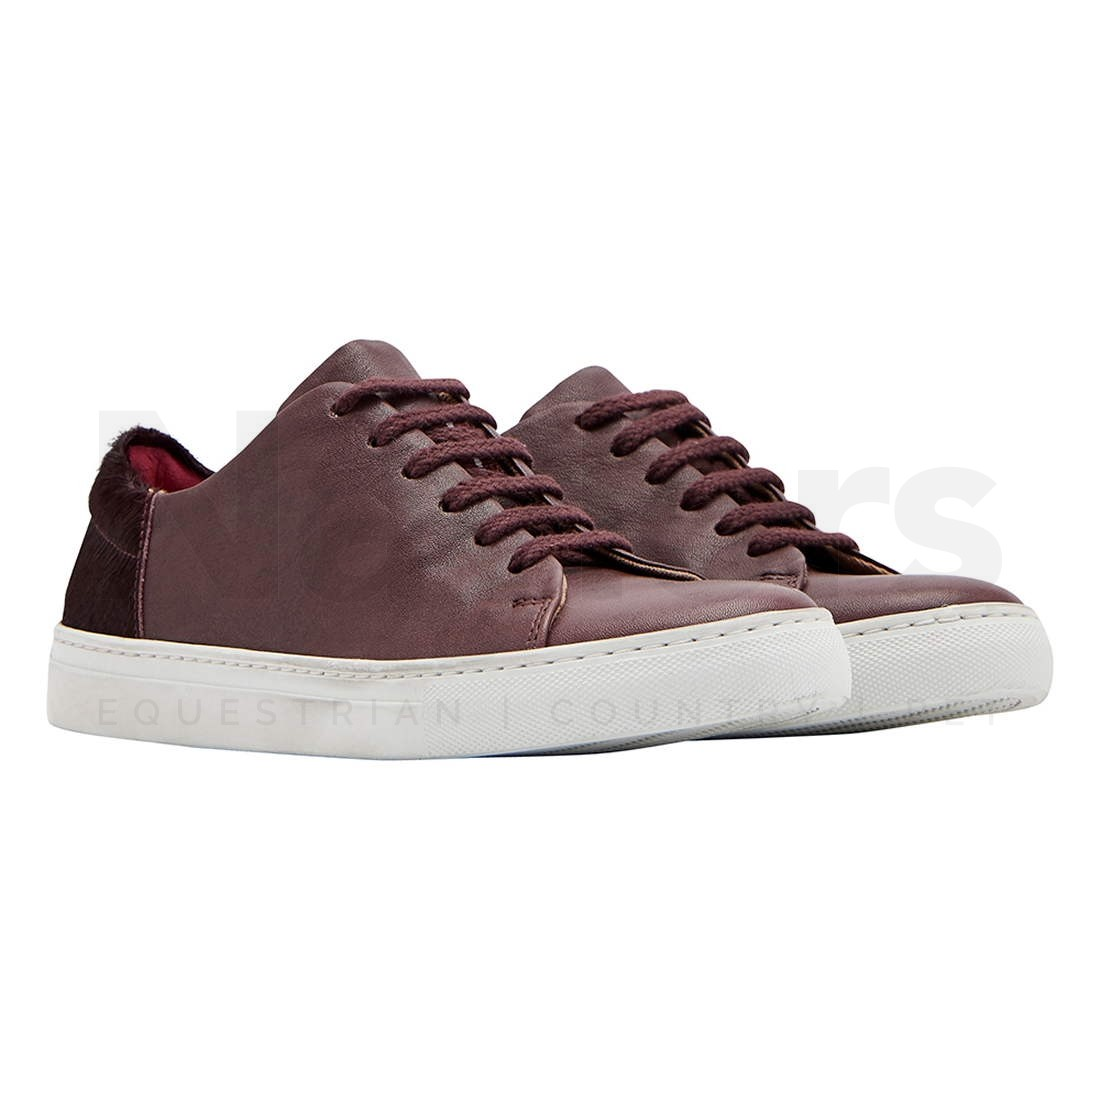 Joules mujer mujer mujer Solena Leather Low Top Lace Up Fashion zapatillas  Ahorre hasta un 70% de descuento.